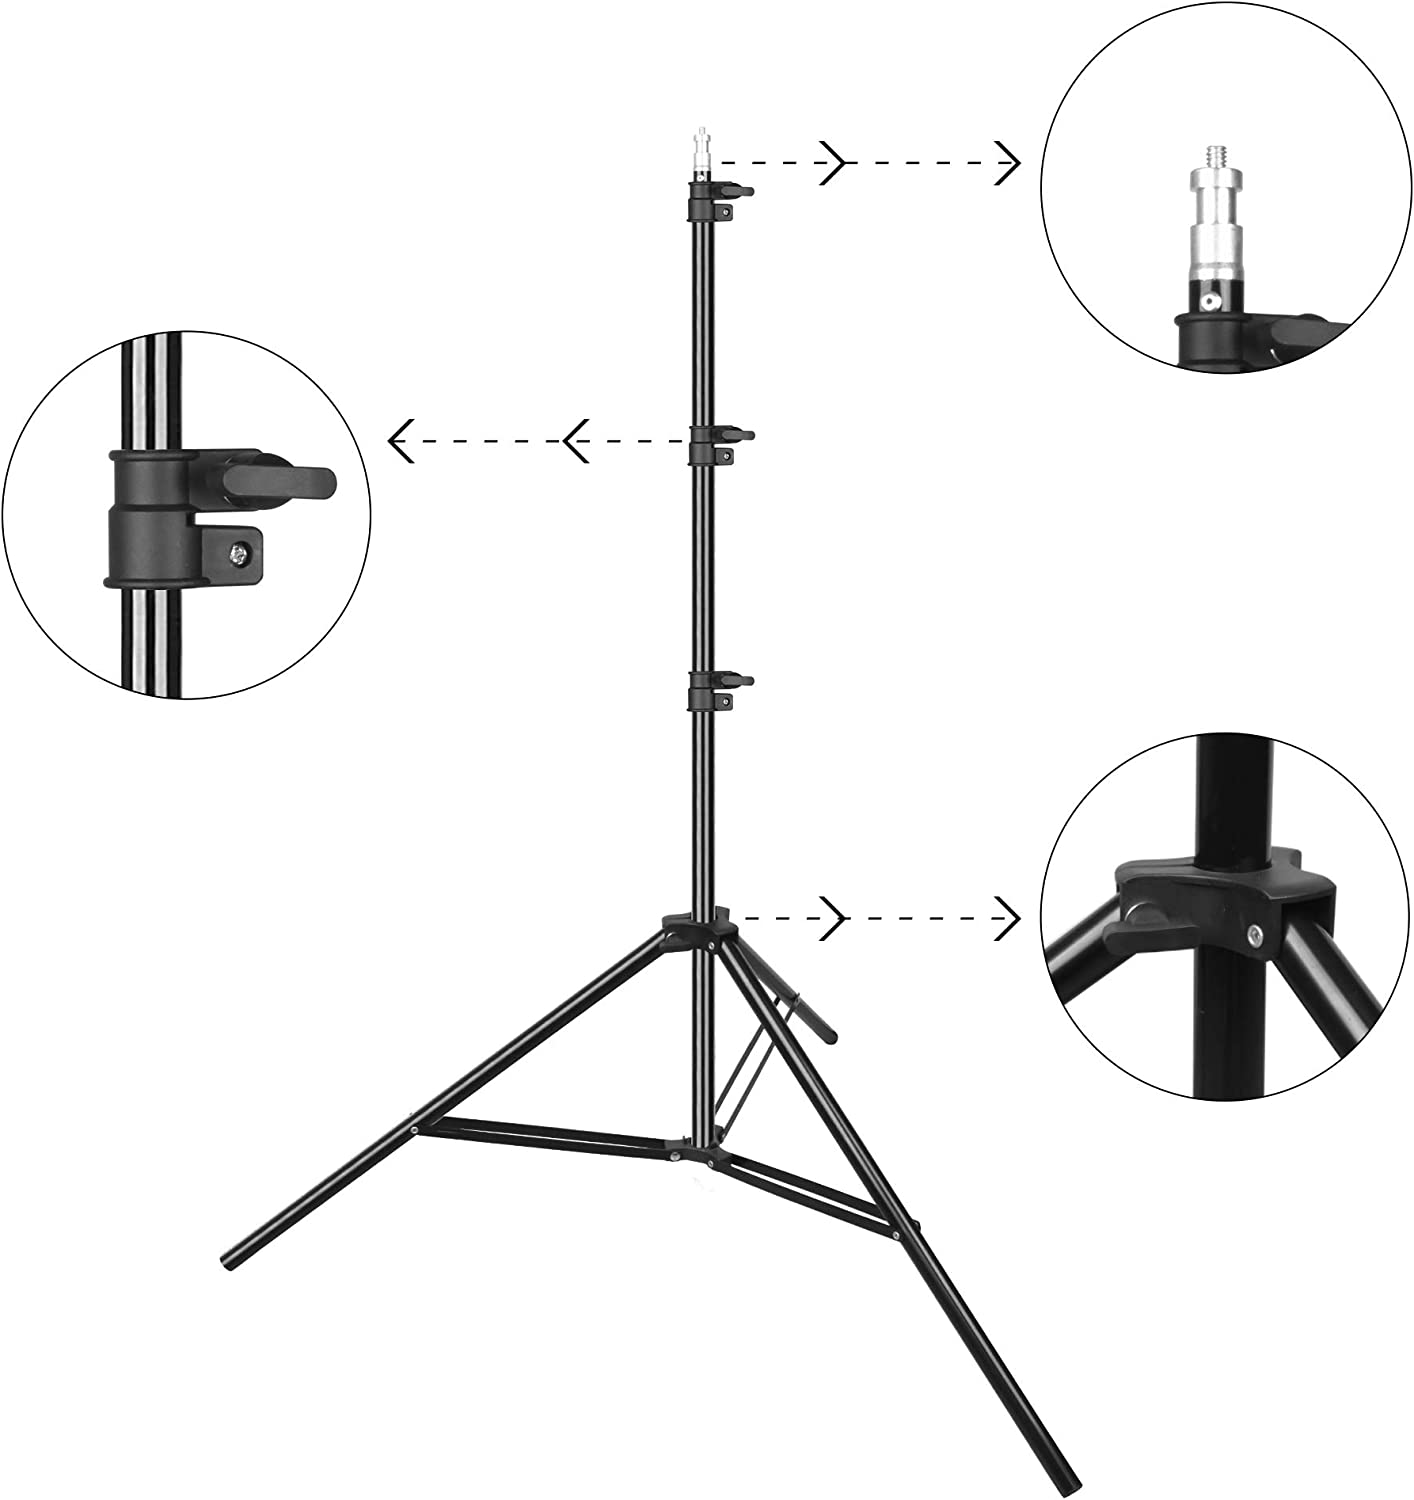 Emart T Shape Portable Background Backdrop Support Stand Kit 5ft Wide 8 5ft Tall Adjustable Photo Backdrop Stand With 4 Spring Clamps Amazon Ca Camera Photo